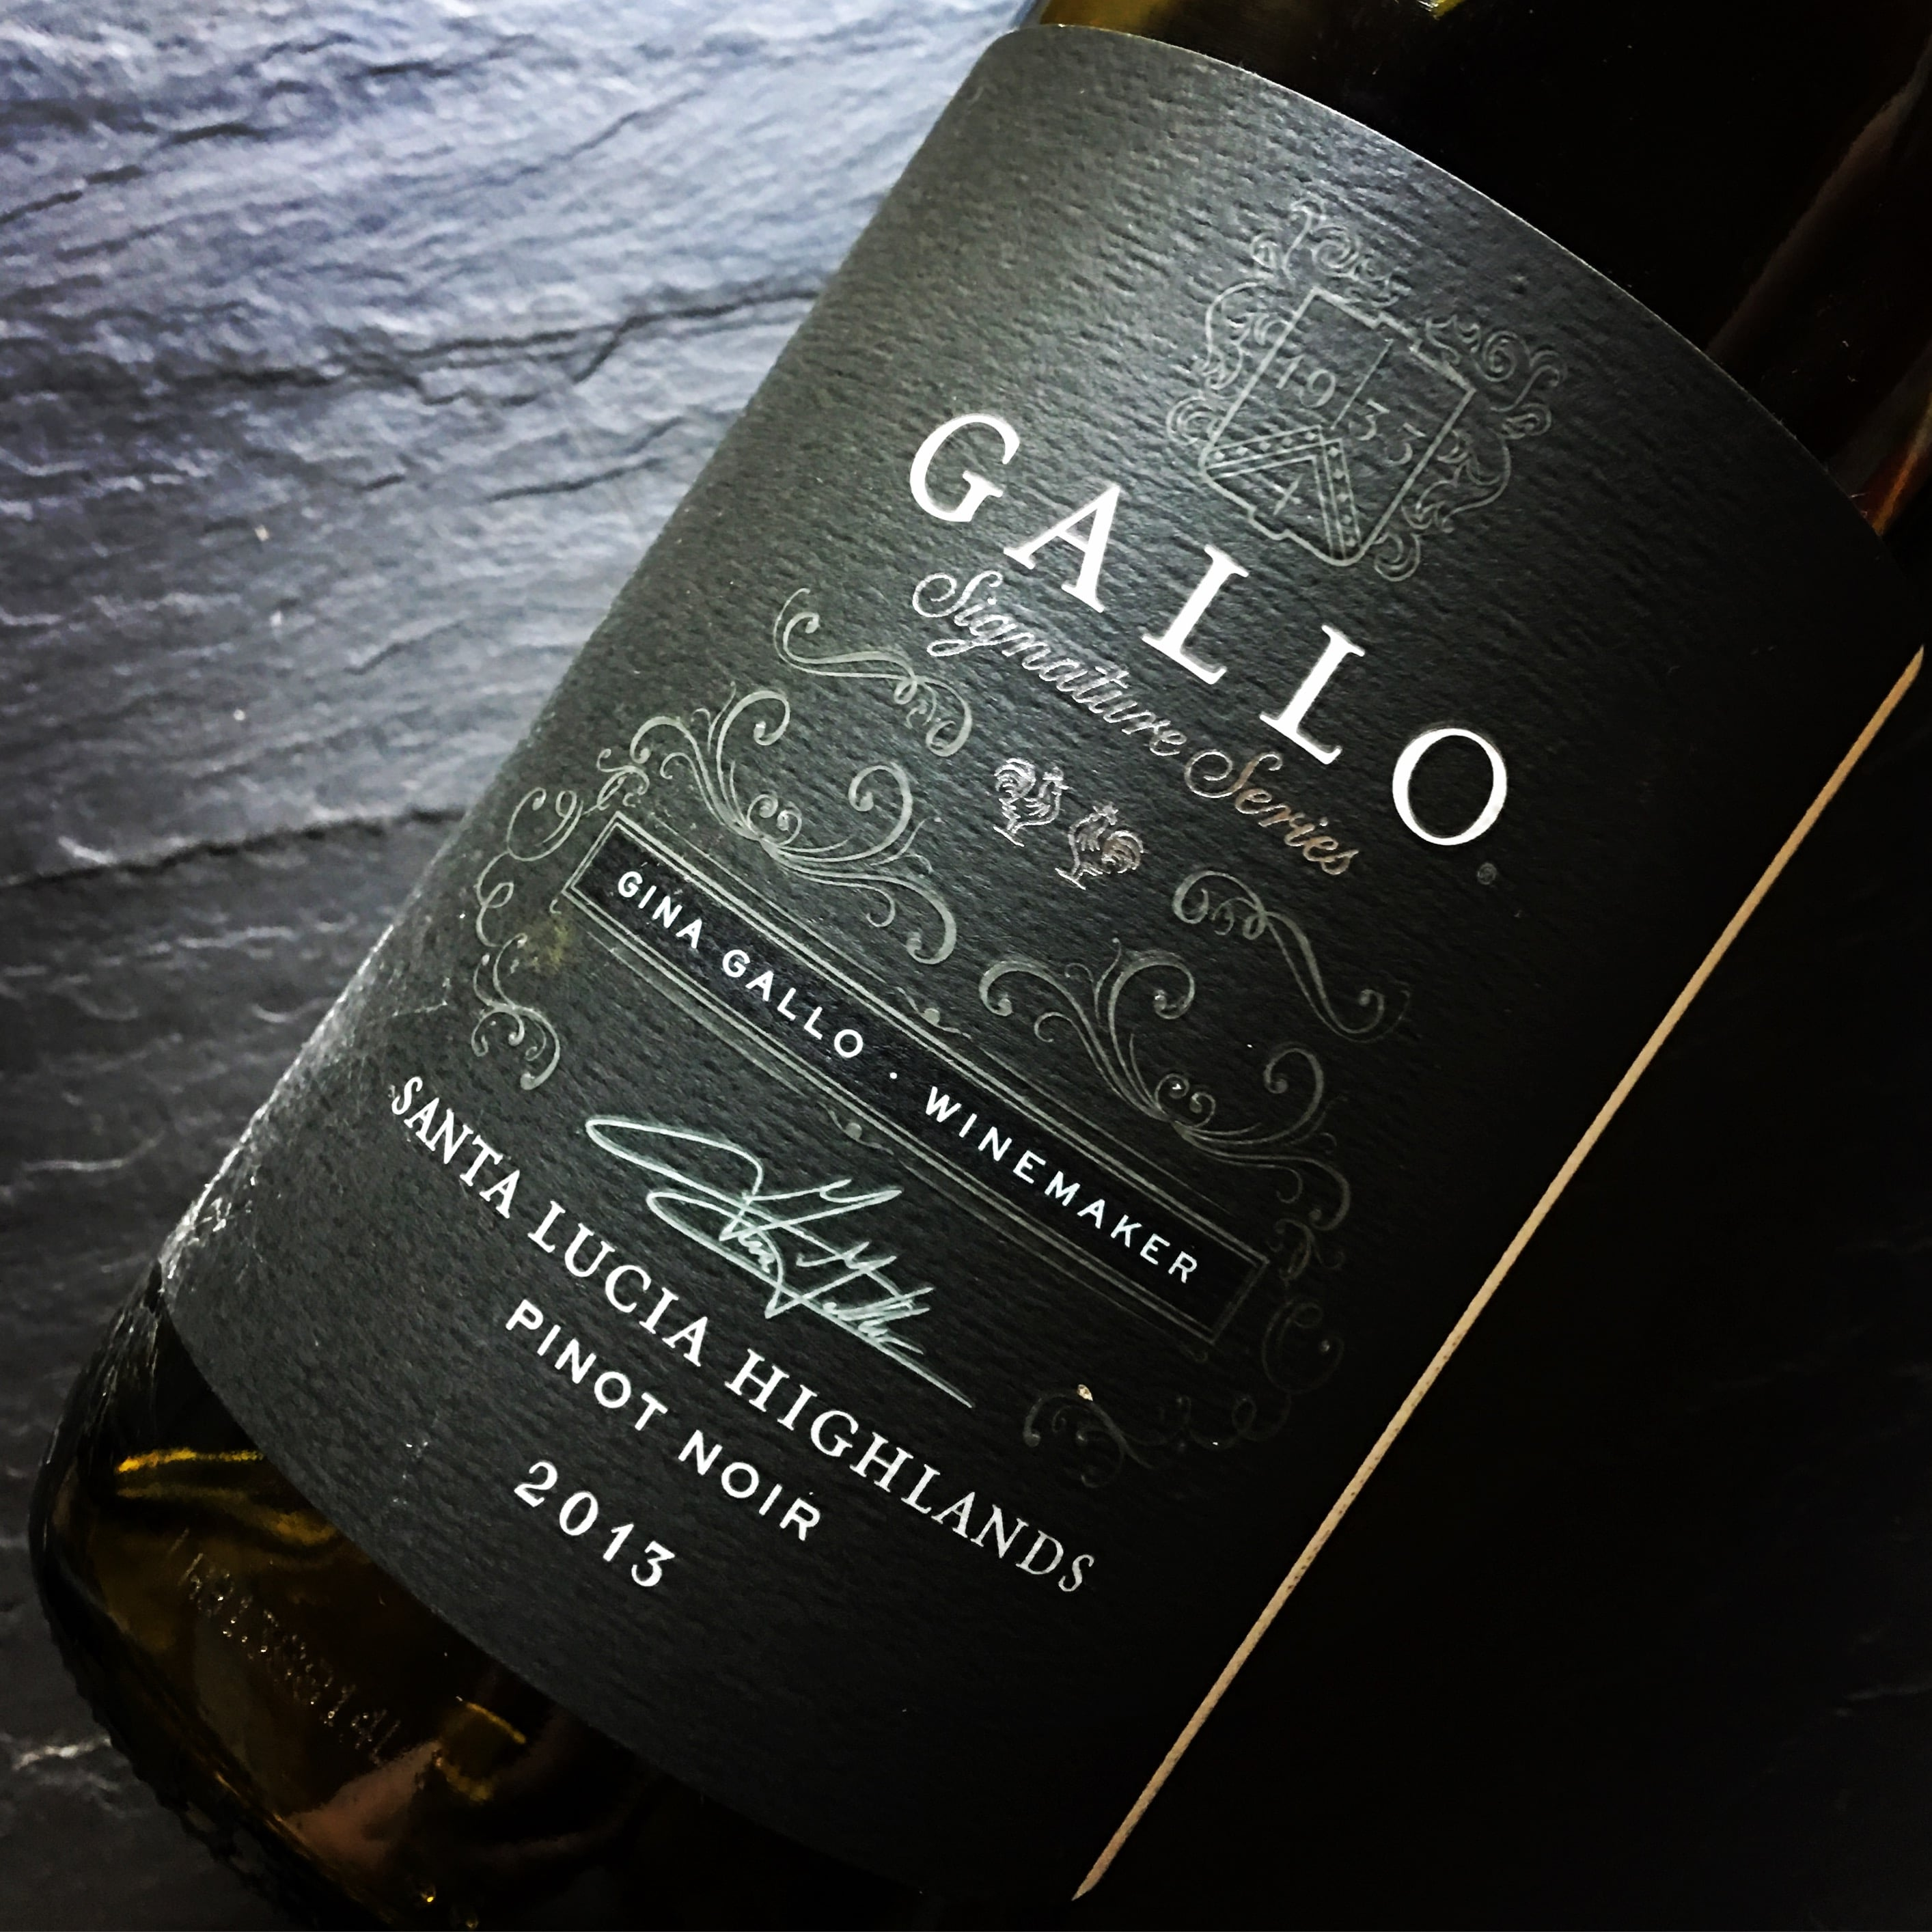 Ernest & Julio Gallo Signature Series Pinot Noir 2013